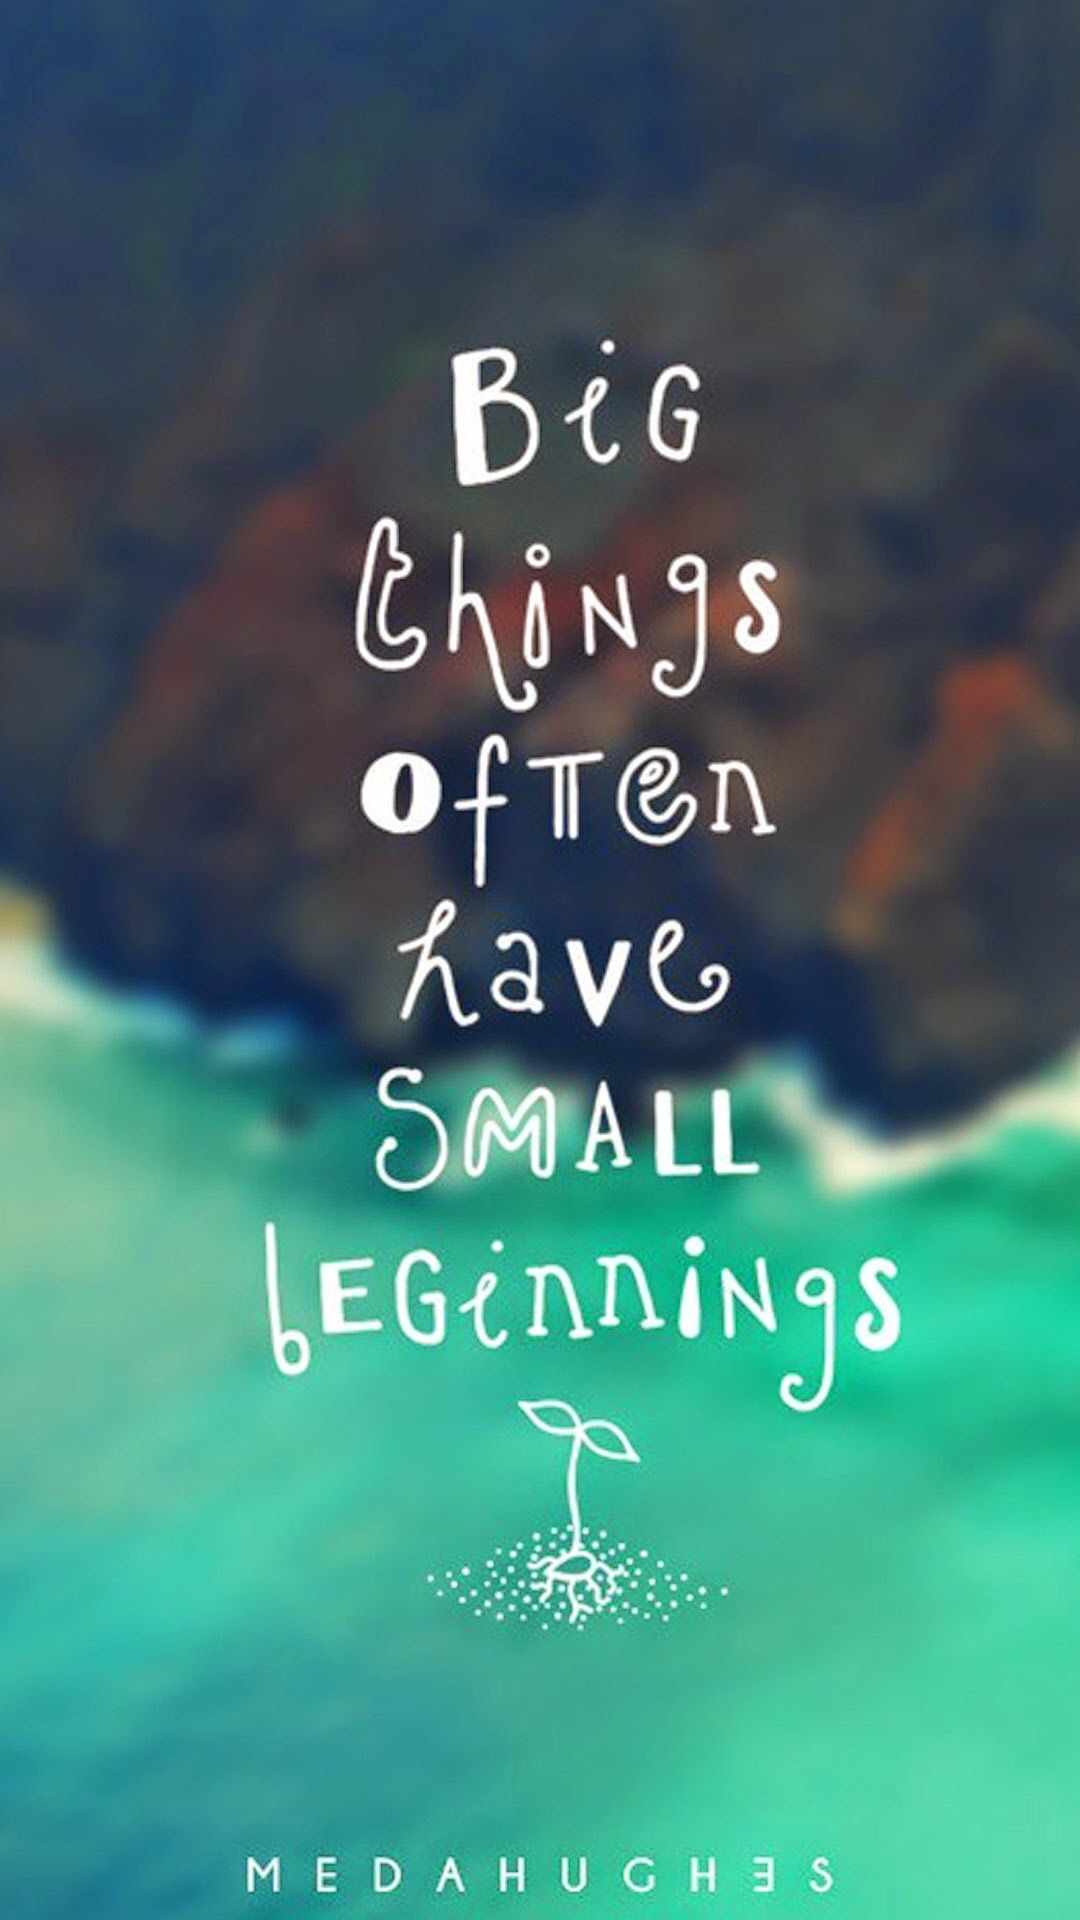 Tap image for more quote wallpaper! Small Beginning